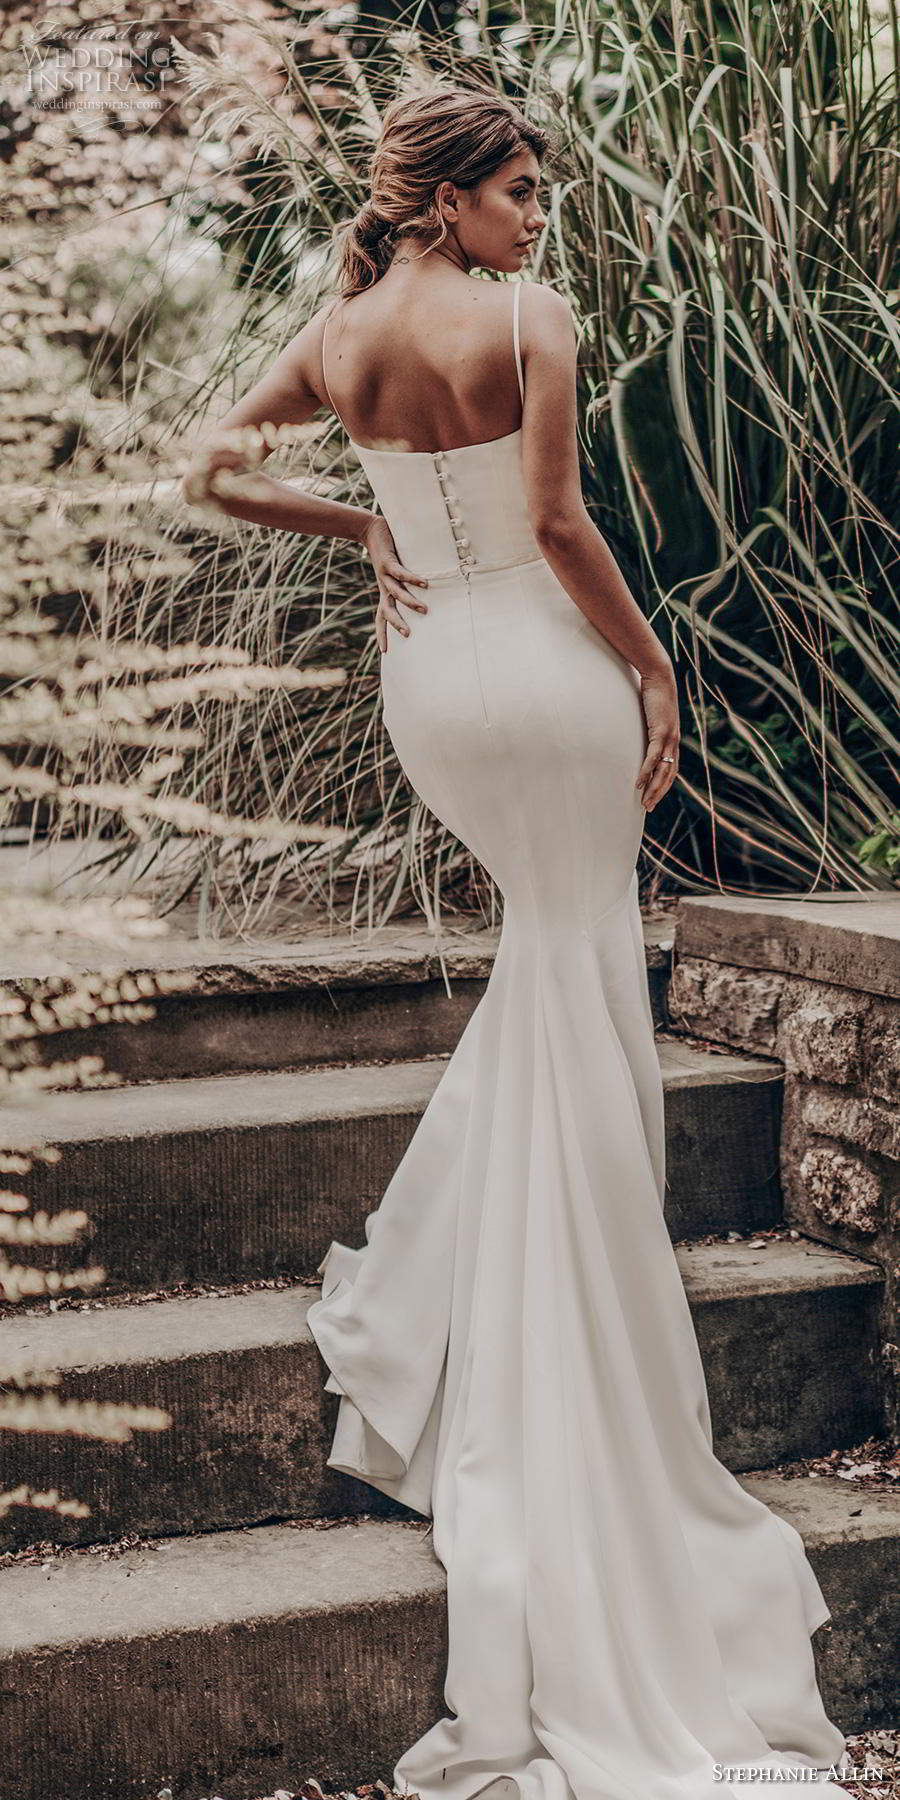 stephanie allin 2019 bridal sleeveless spaghetti strap sweetheart neckline simple minimalist clean elegant sheath wedding dress mid back chapel train (2) bv